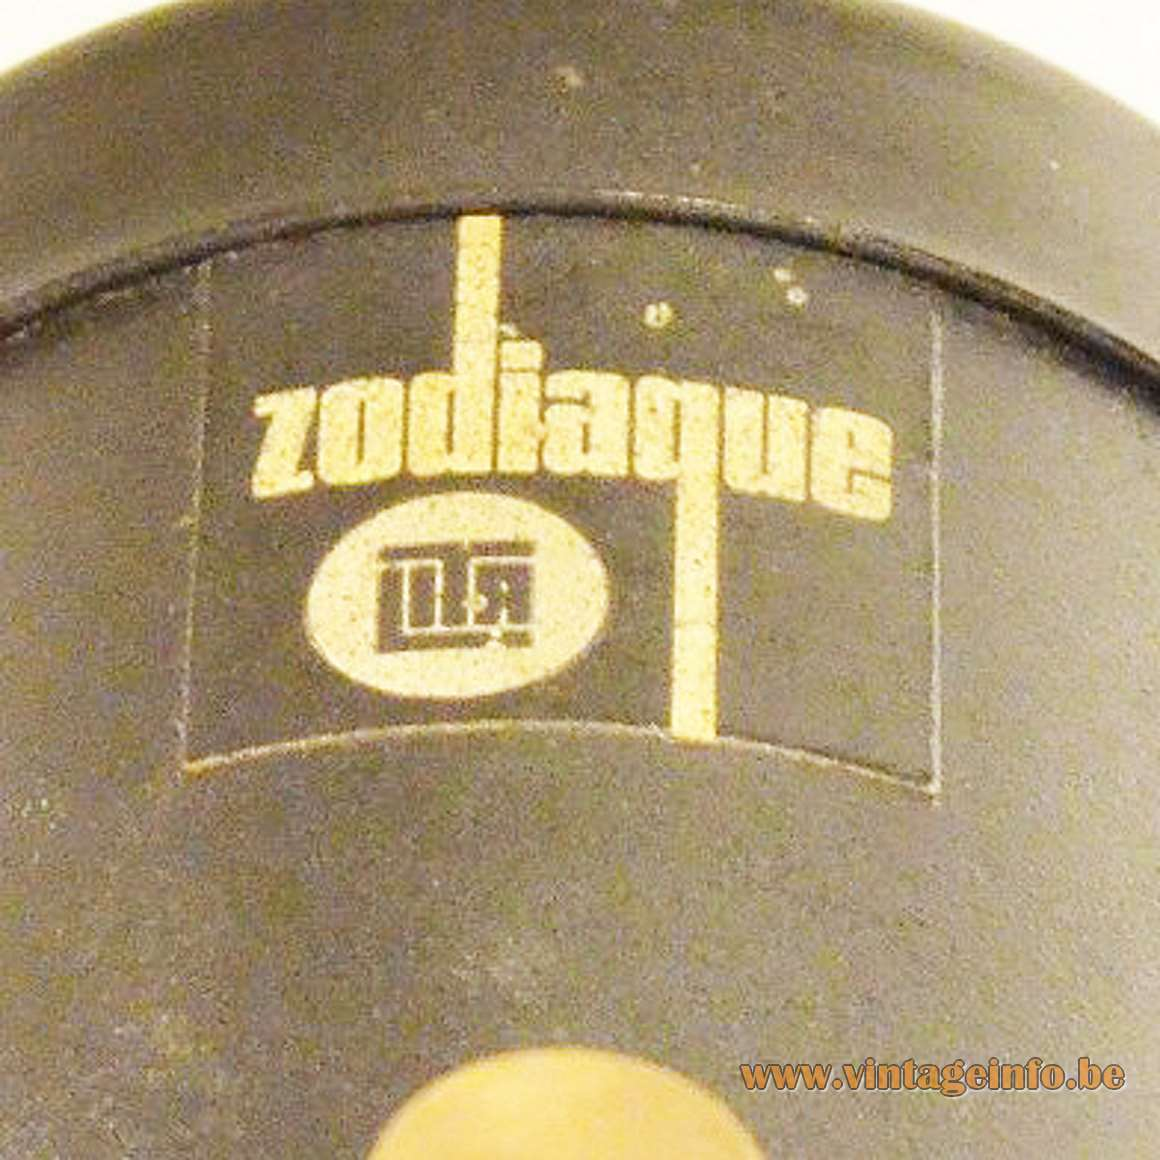 Jacques Biny Lita Zodiaque Projector Lamp 1950s 1960s lens wall lamp brass round black base MCM label